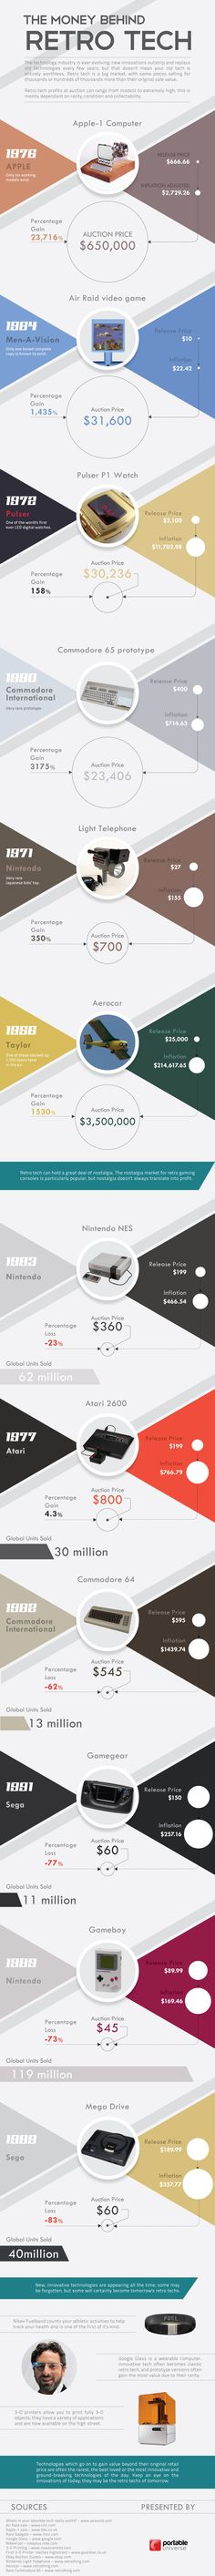 Retro Tech And What It's Worth Today #infographic